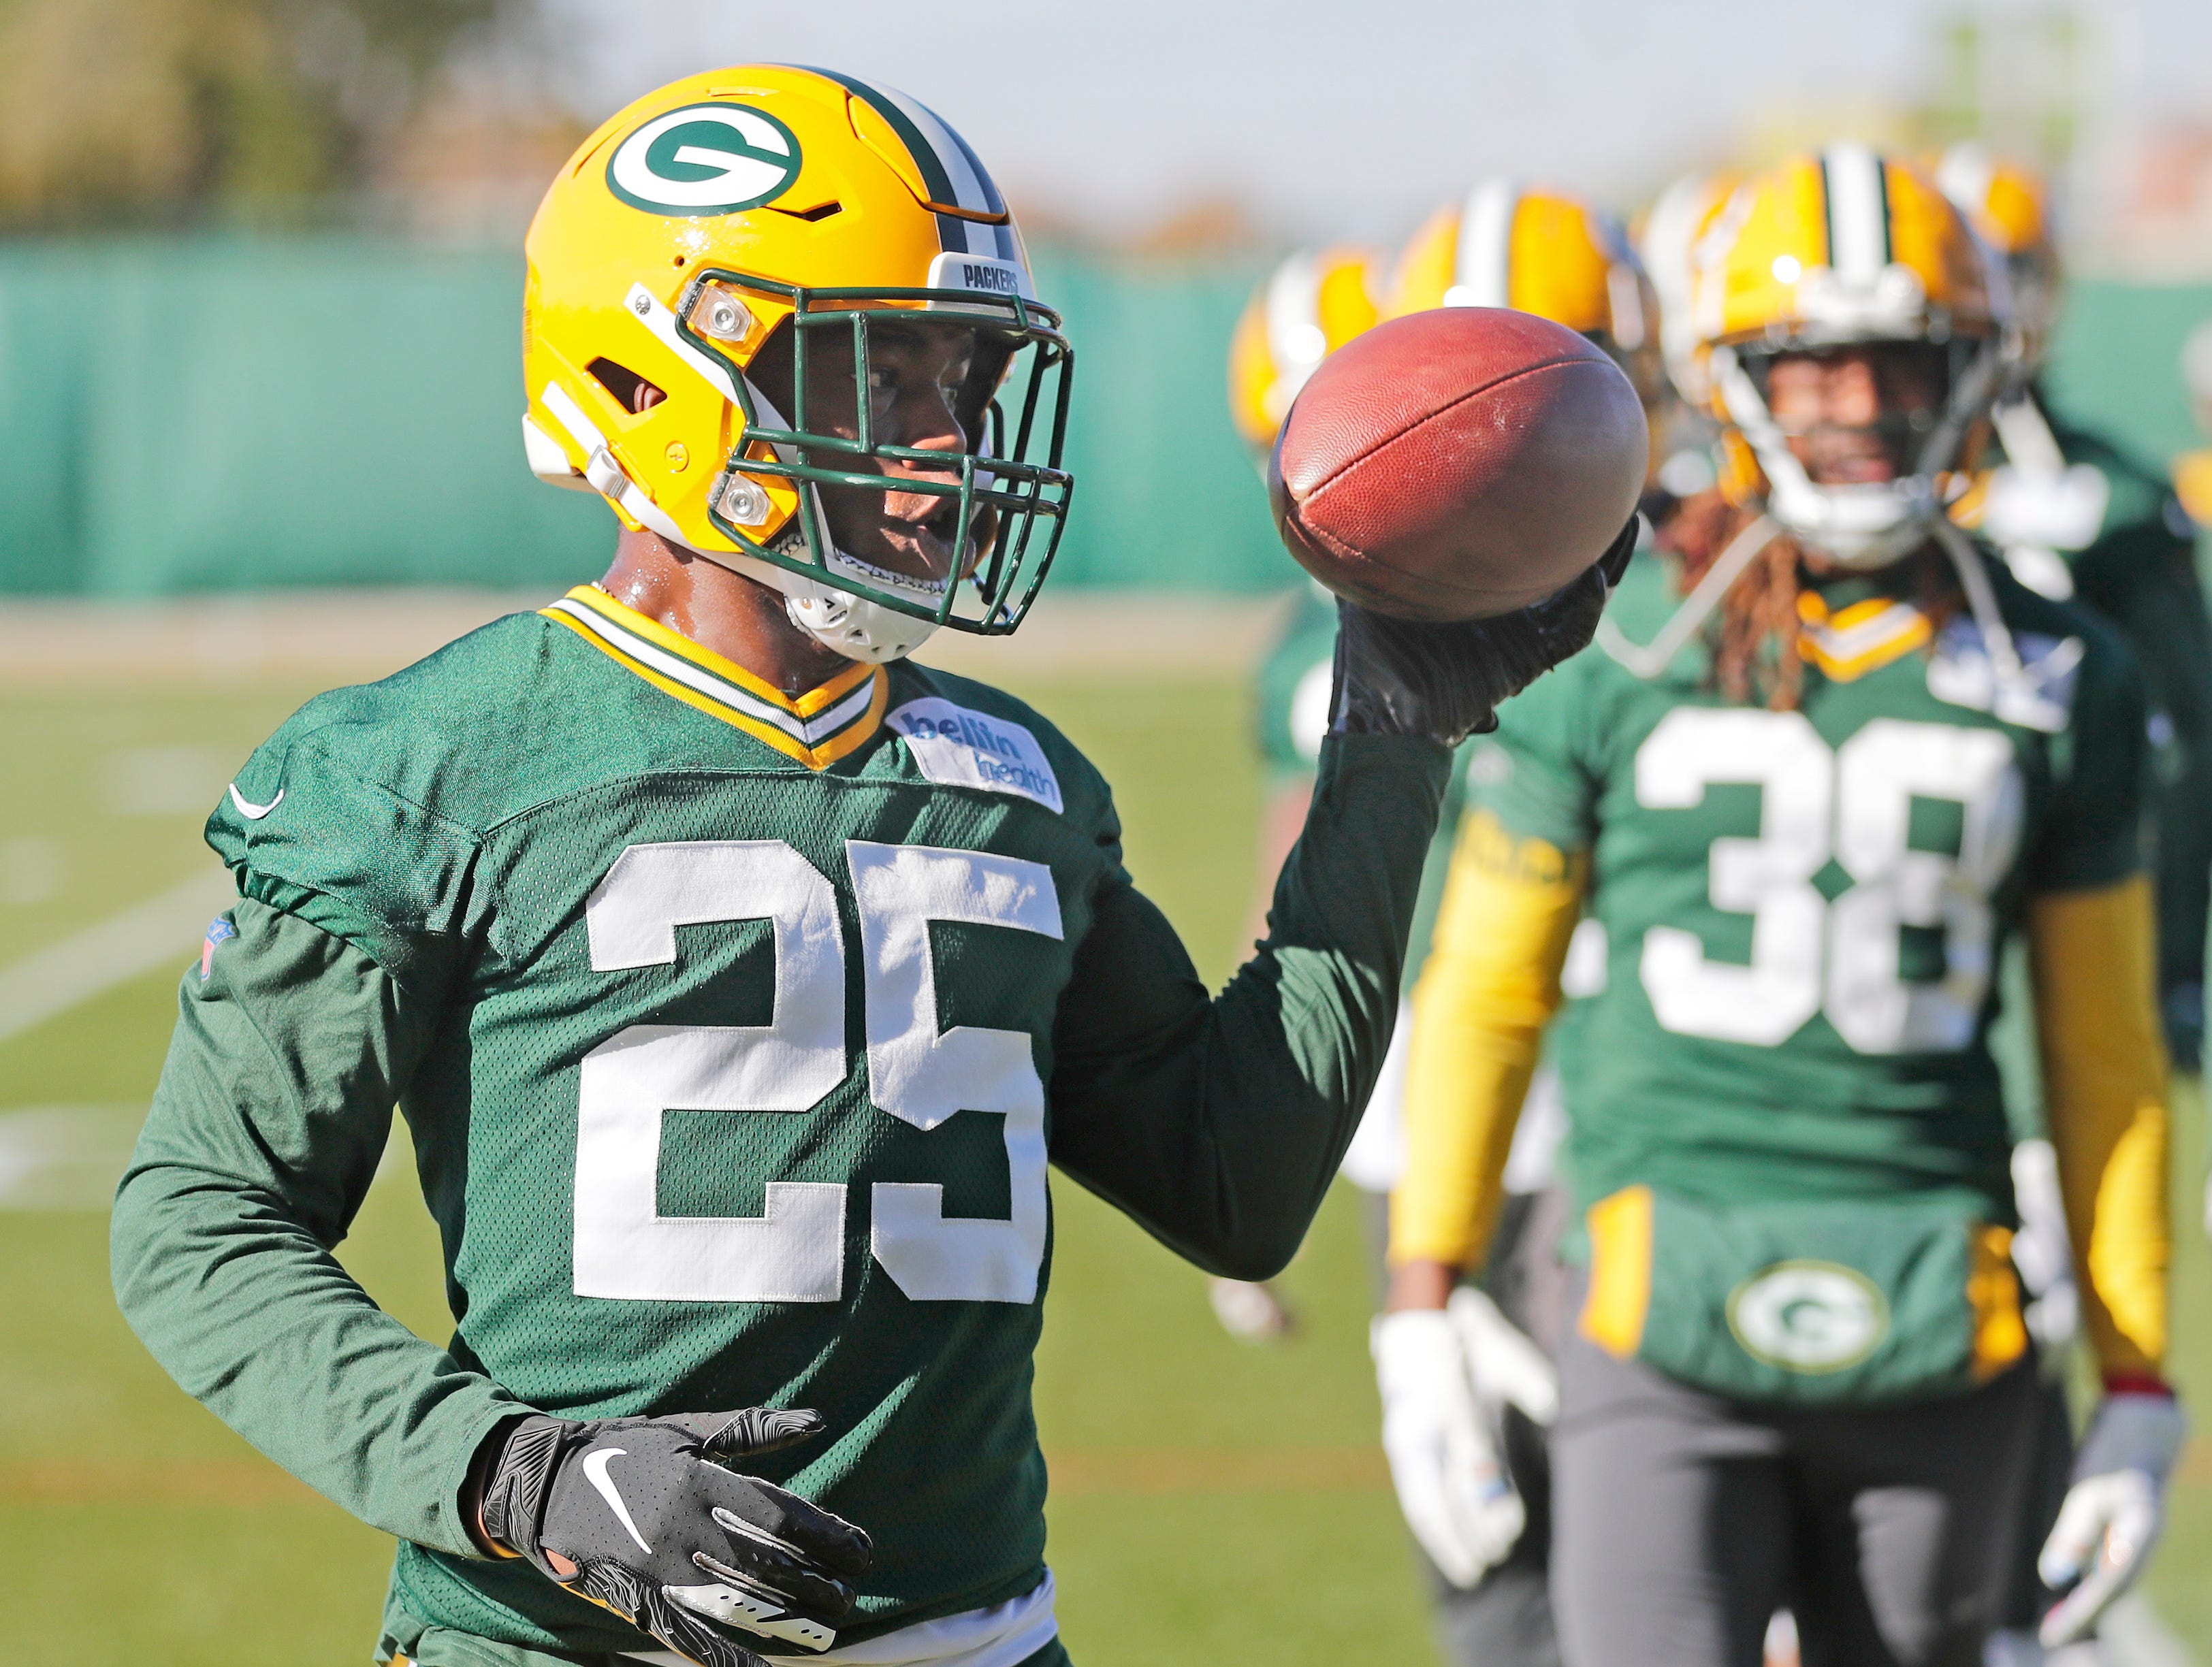 Green Bay Packers cornerback Will Redmond (25) during practice at Ray Nitschke Field on Wednesday, October 31, 2018 in Ashwaubenon, Wis.